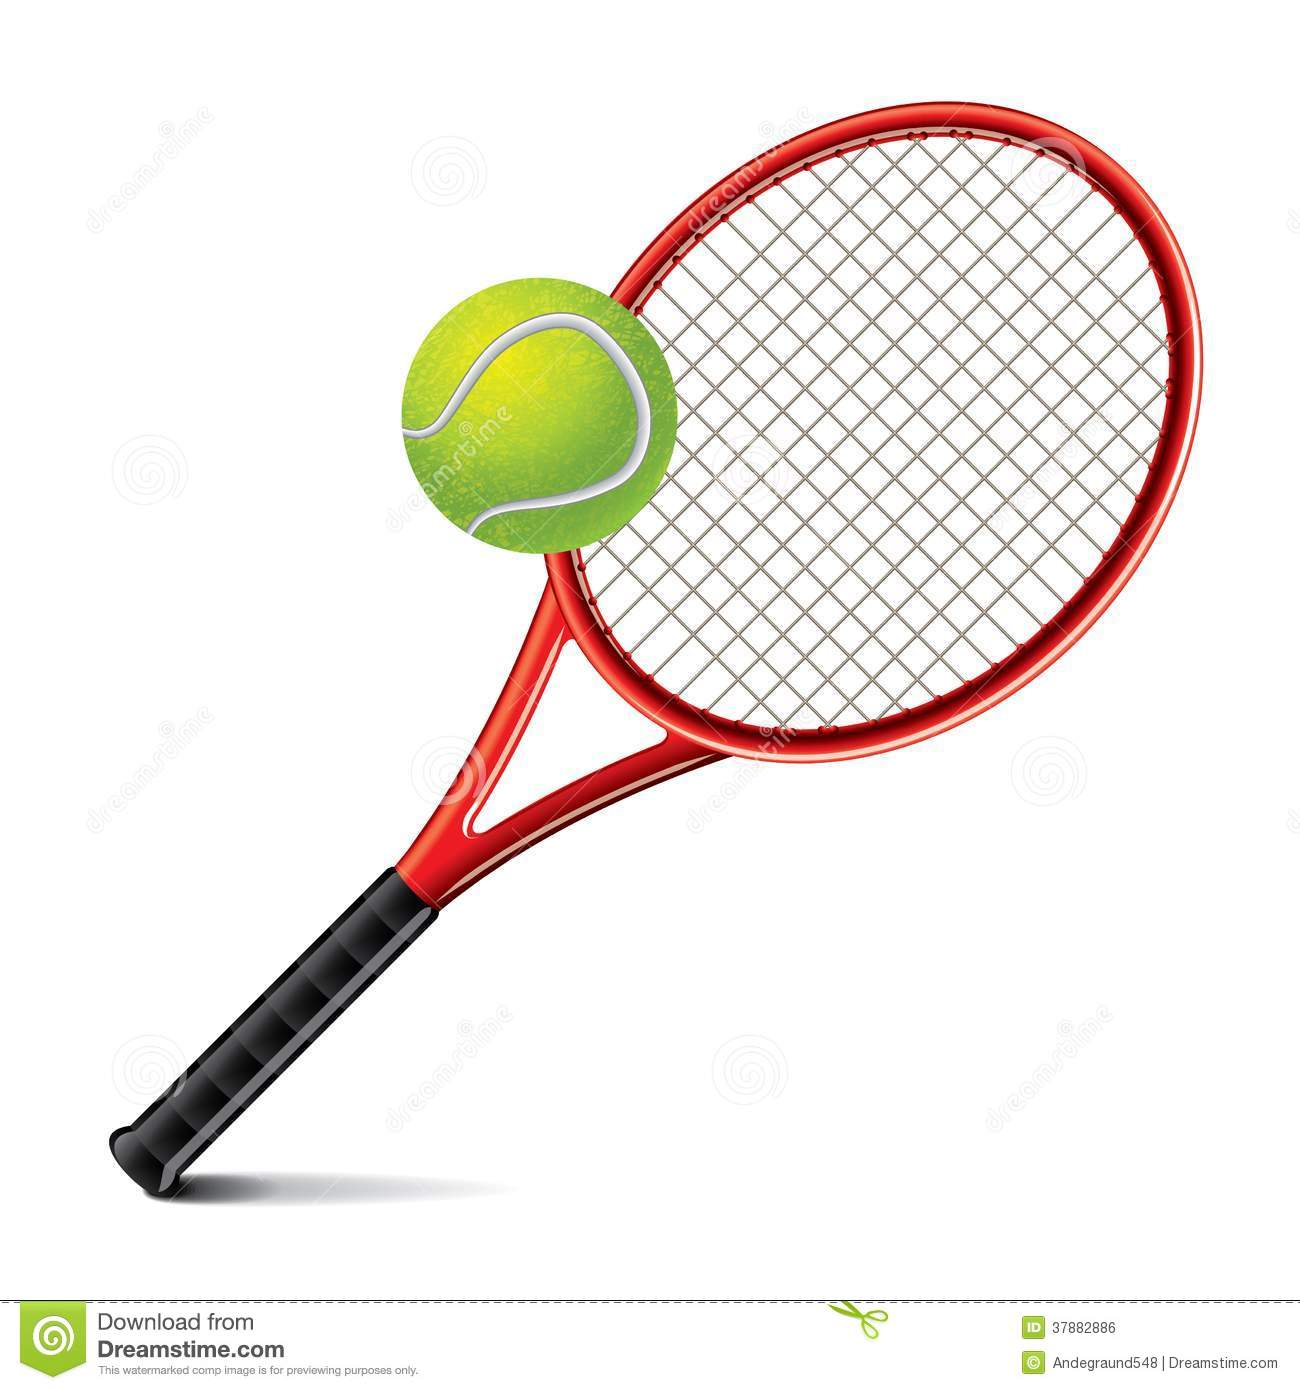 tennis racket and ball vector illustration royalty free tennis ball clipart black and white clipart balle tennis